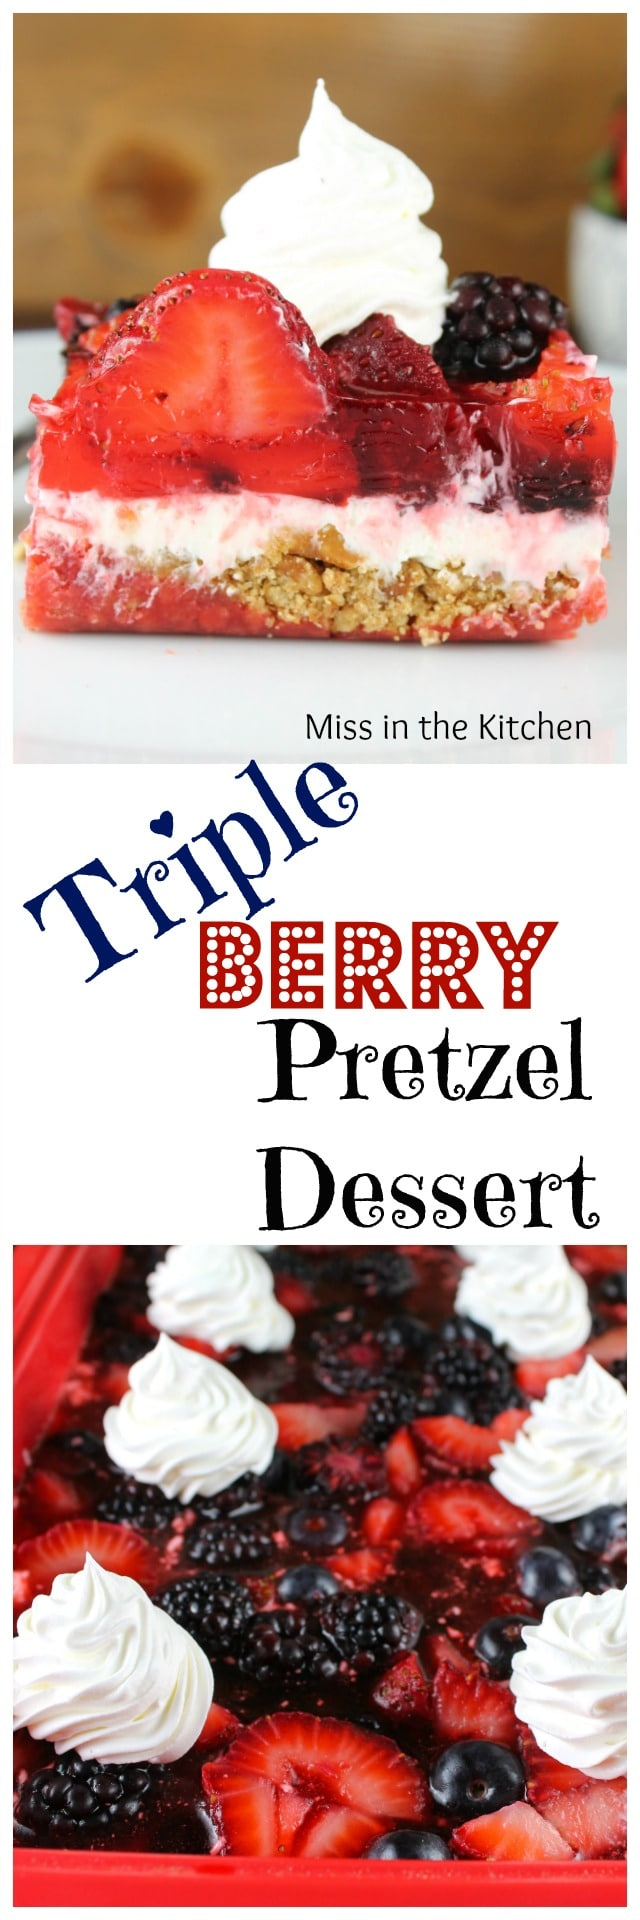 Recipe for Triple Berry Dessert from MissintheKitchen.com #ProgressiveEats